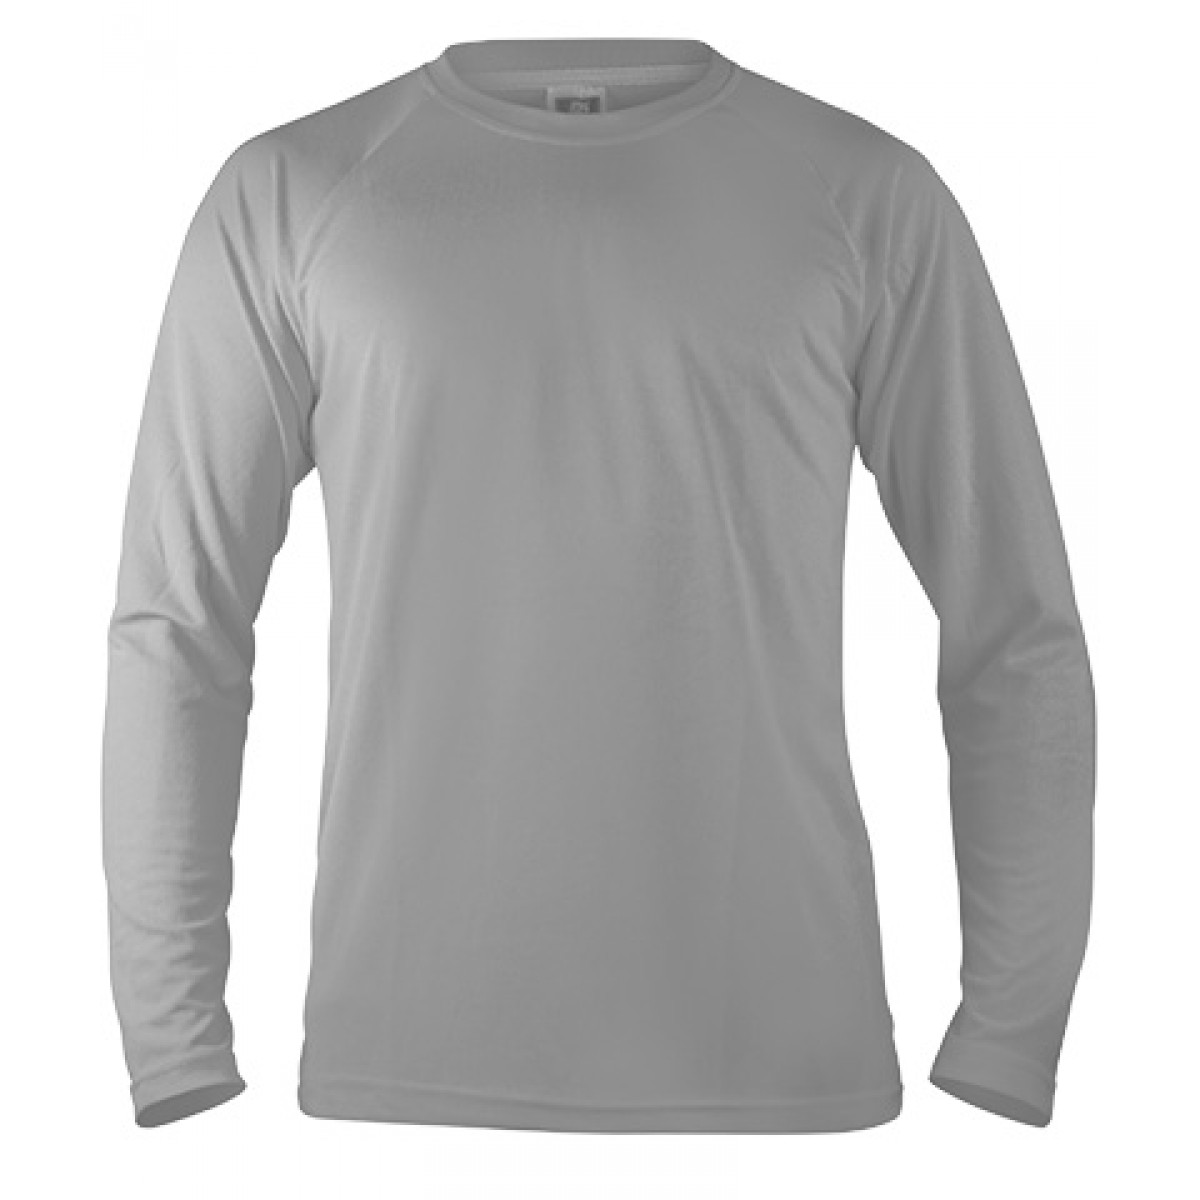 Long Sleeve Performance -Gray -L